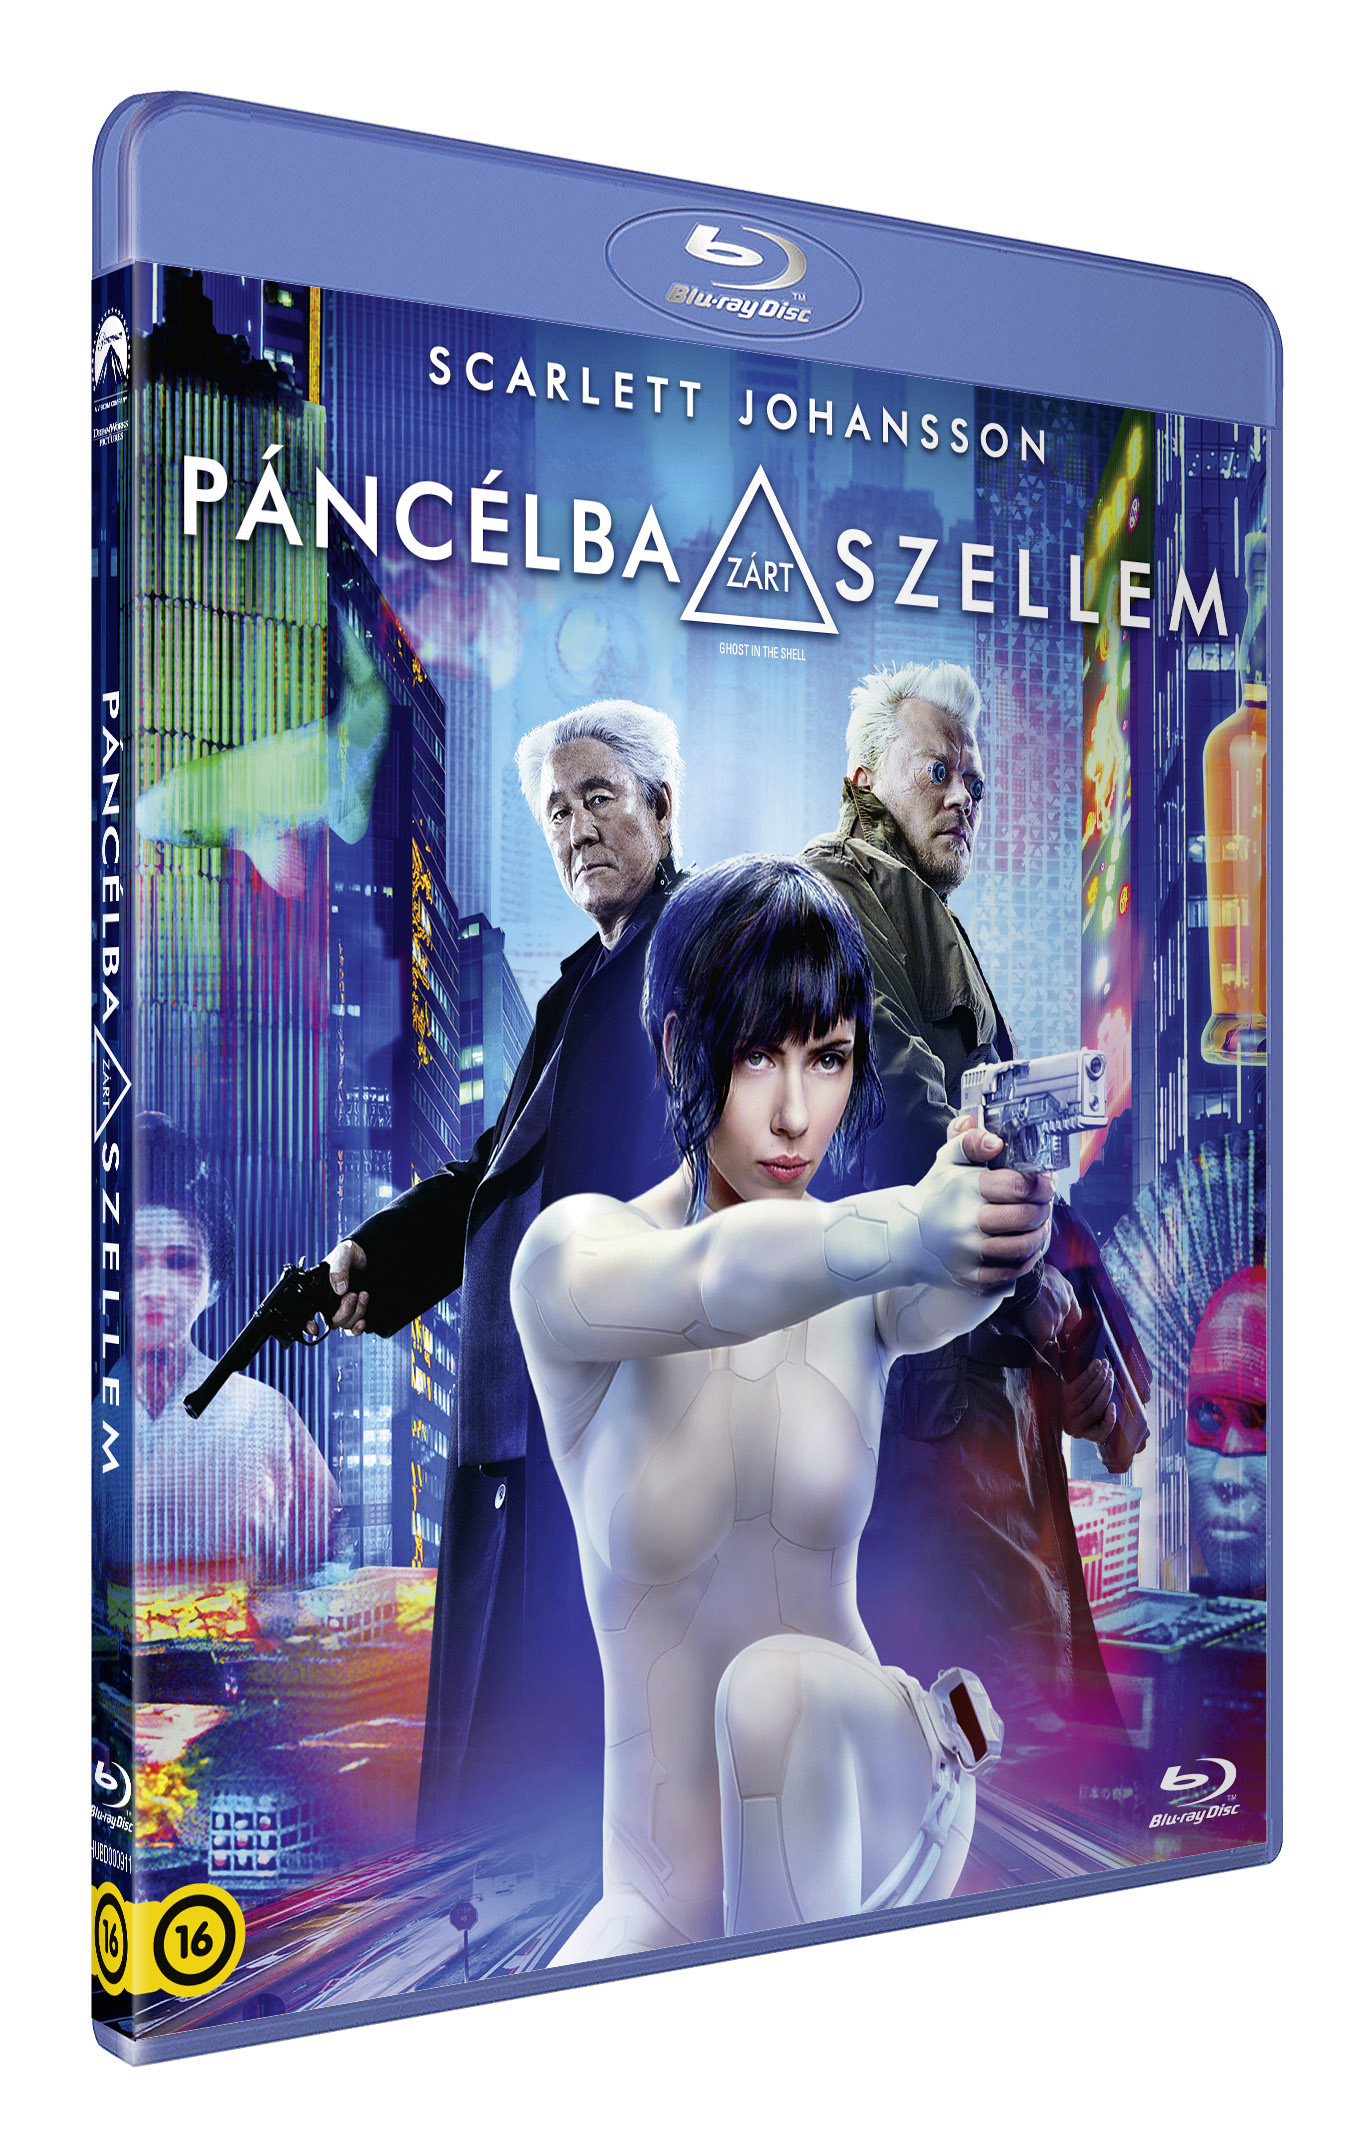 ghost_in_the_shell_hubd000911_3d.jpg